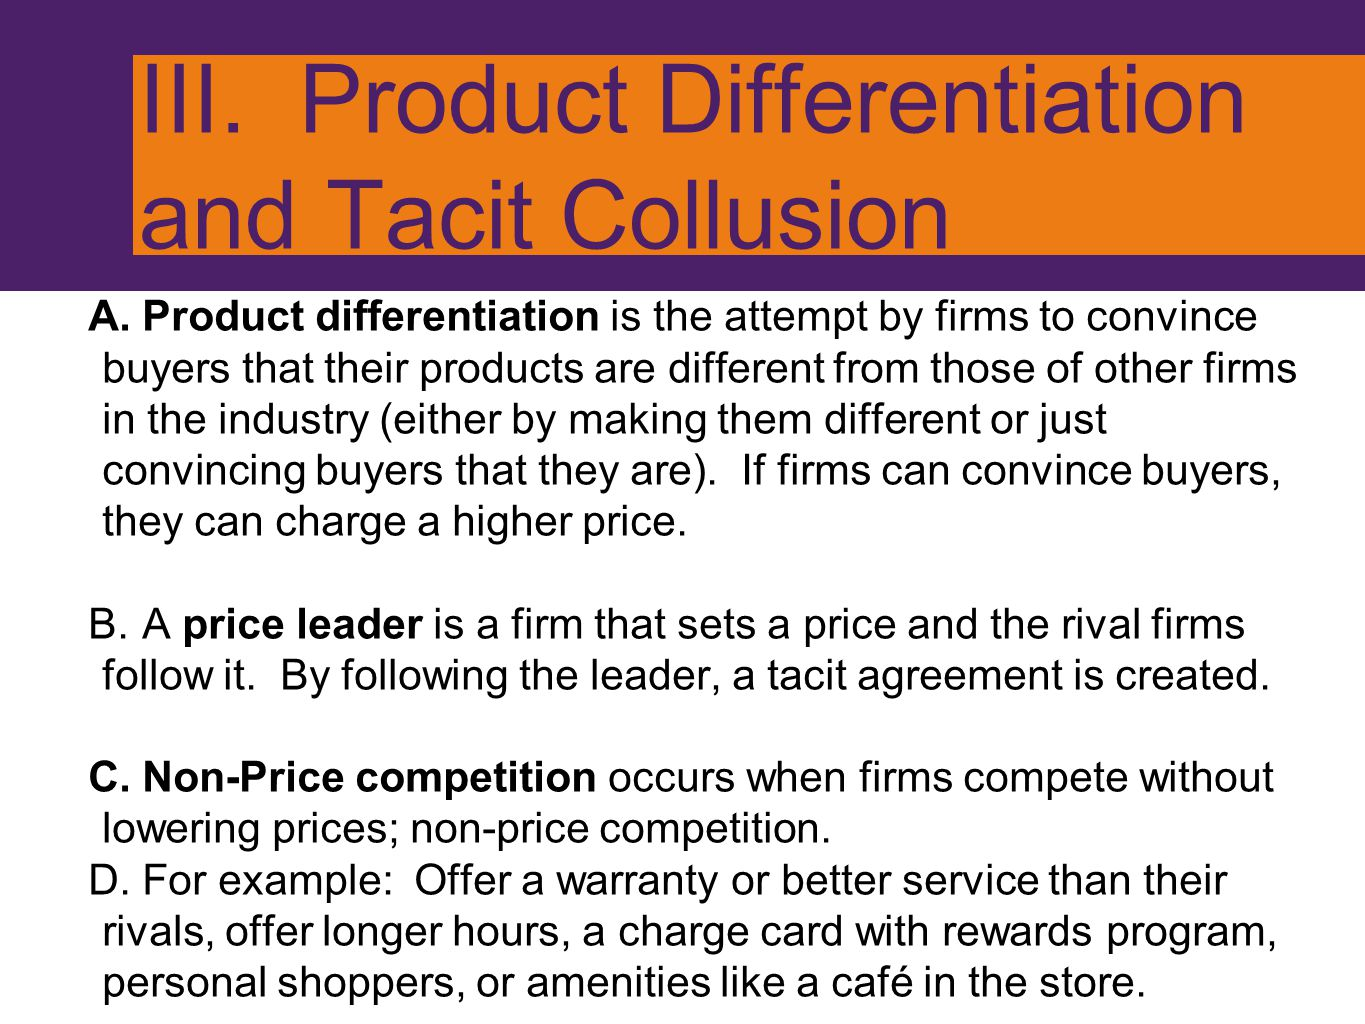 III. Product Differentiation and Tacit Collusion